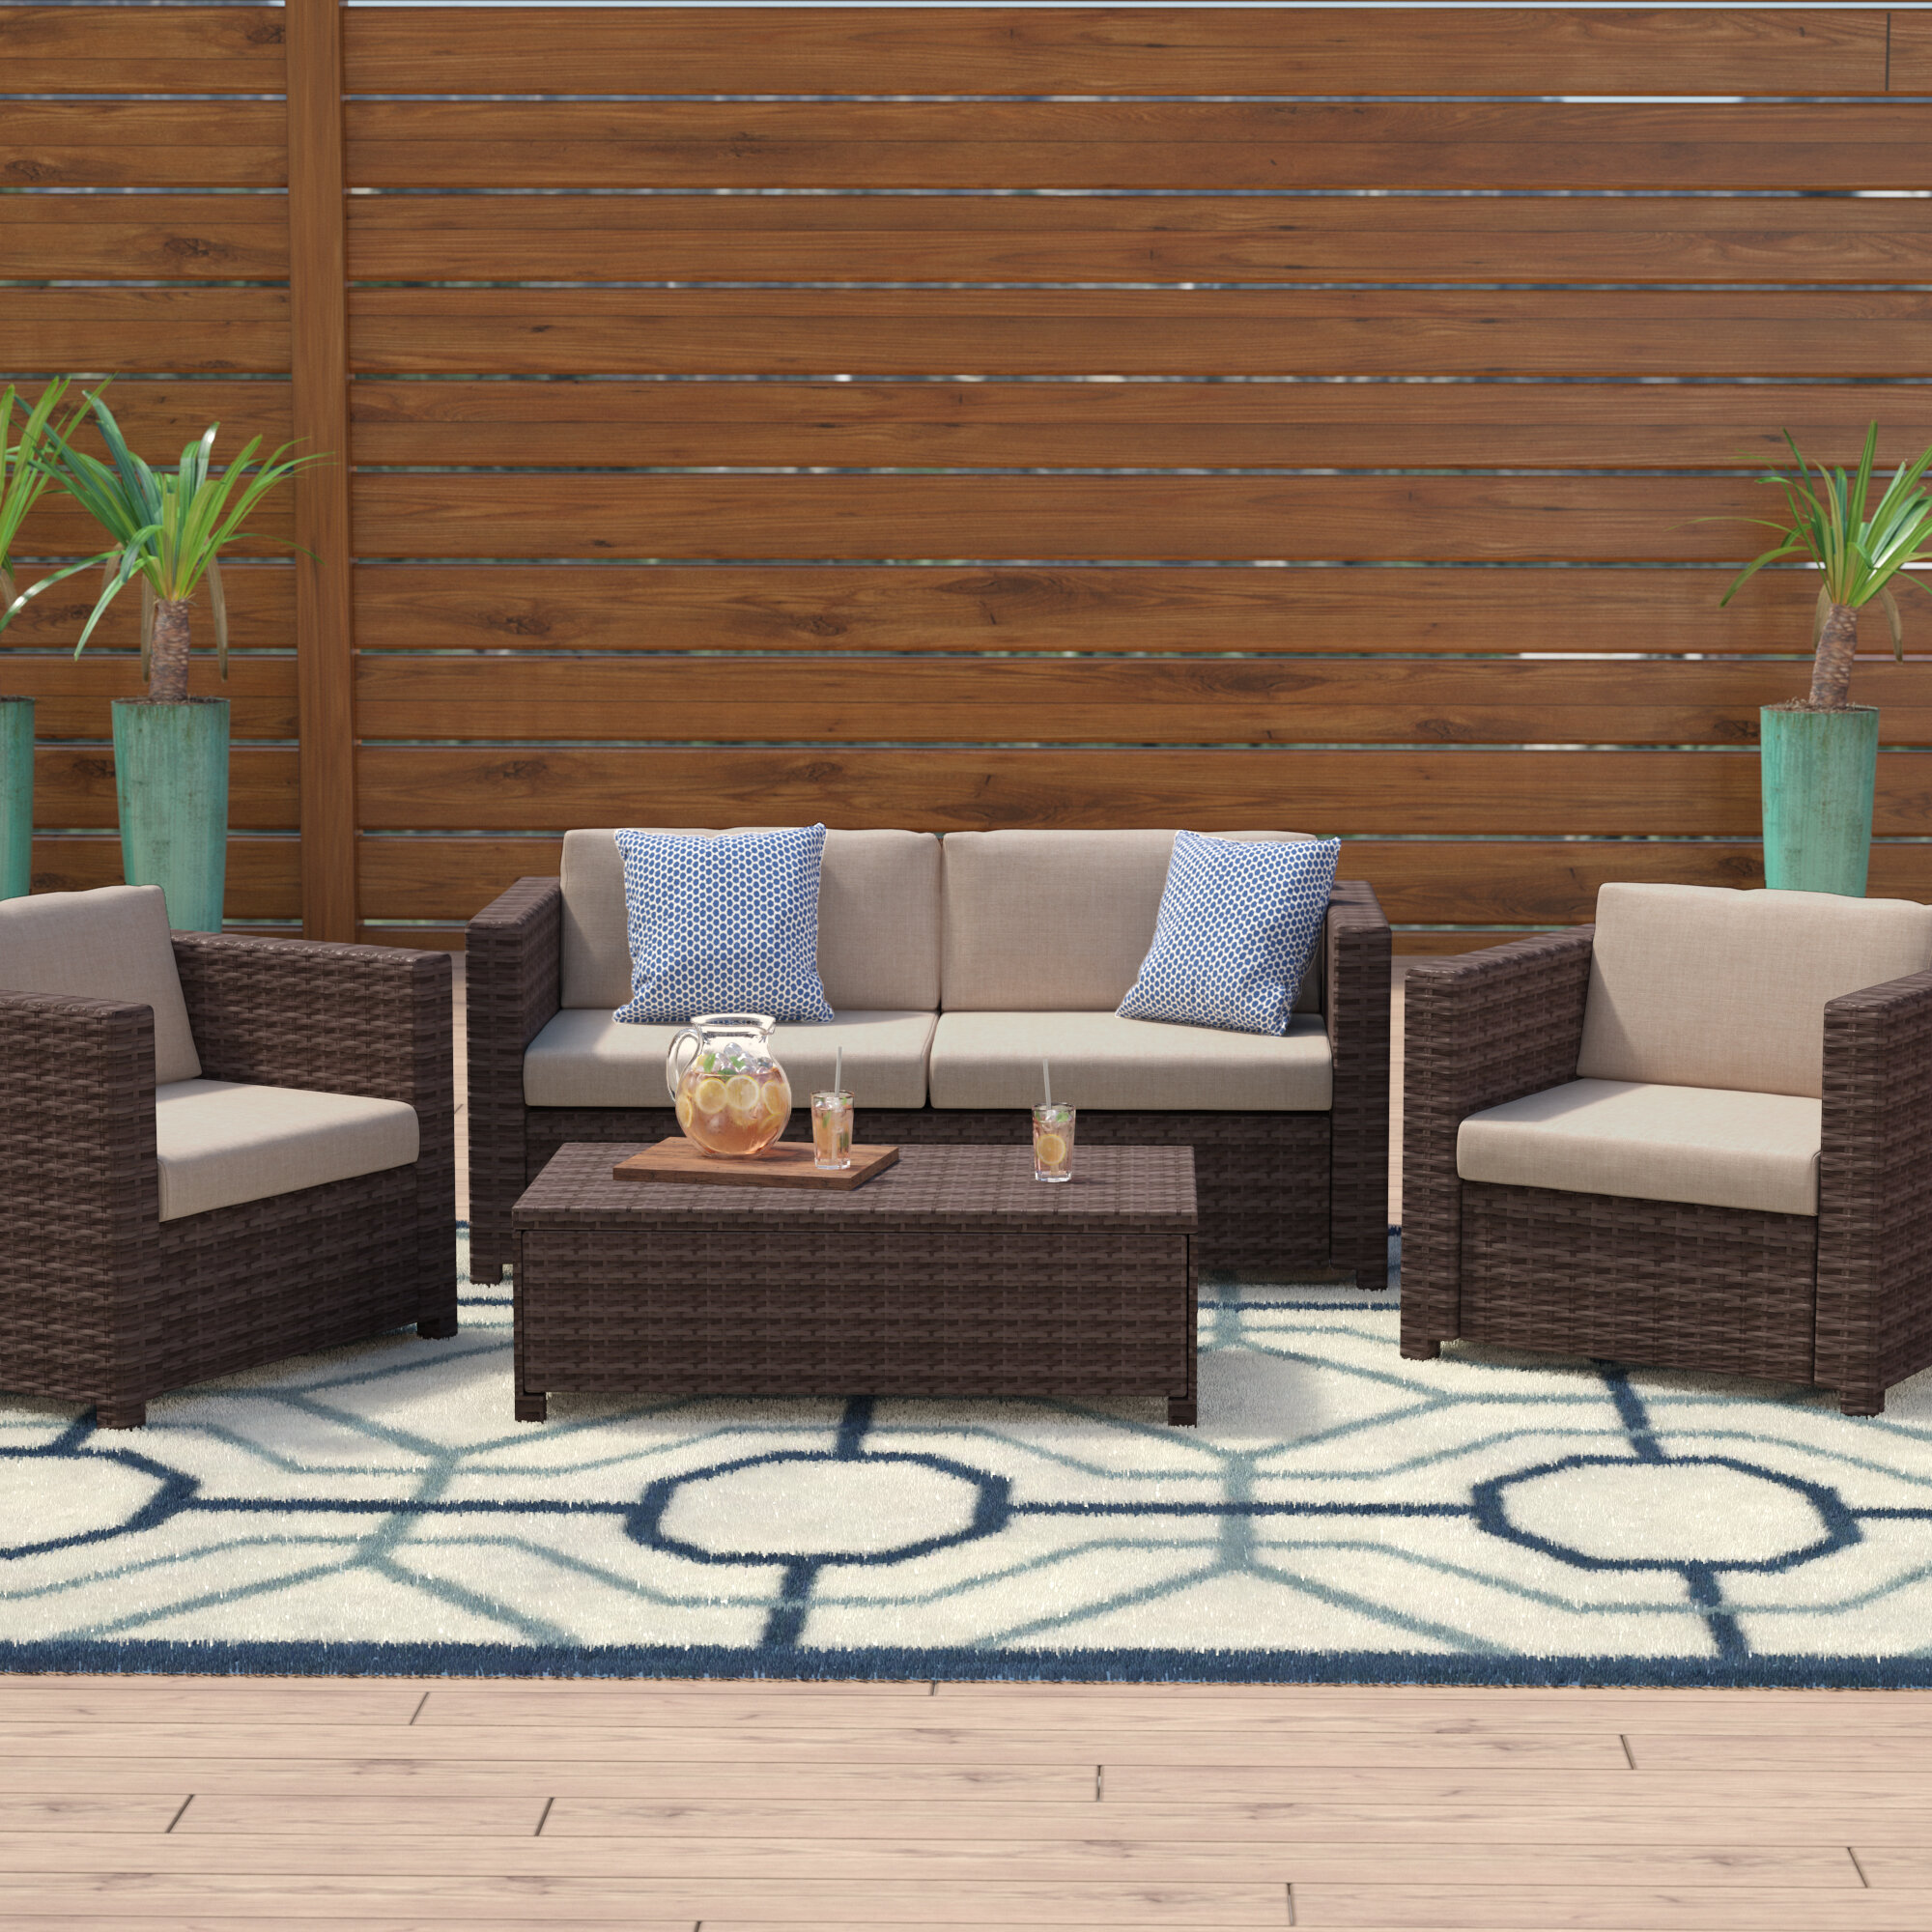 Belva 4 Piece Rattan Sofa Set: Rattan Sofa Sets Livingston 4 Piece Rattan Sofa Set With